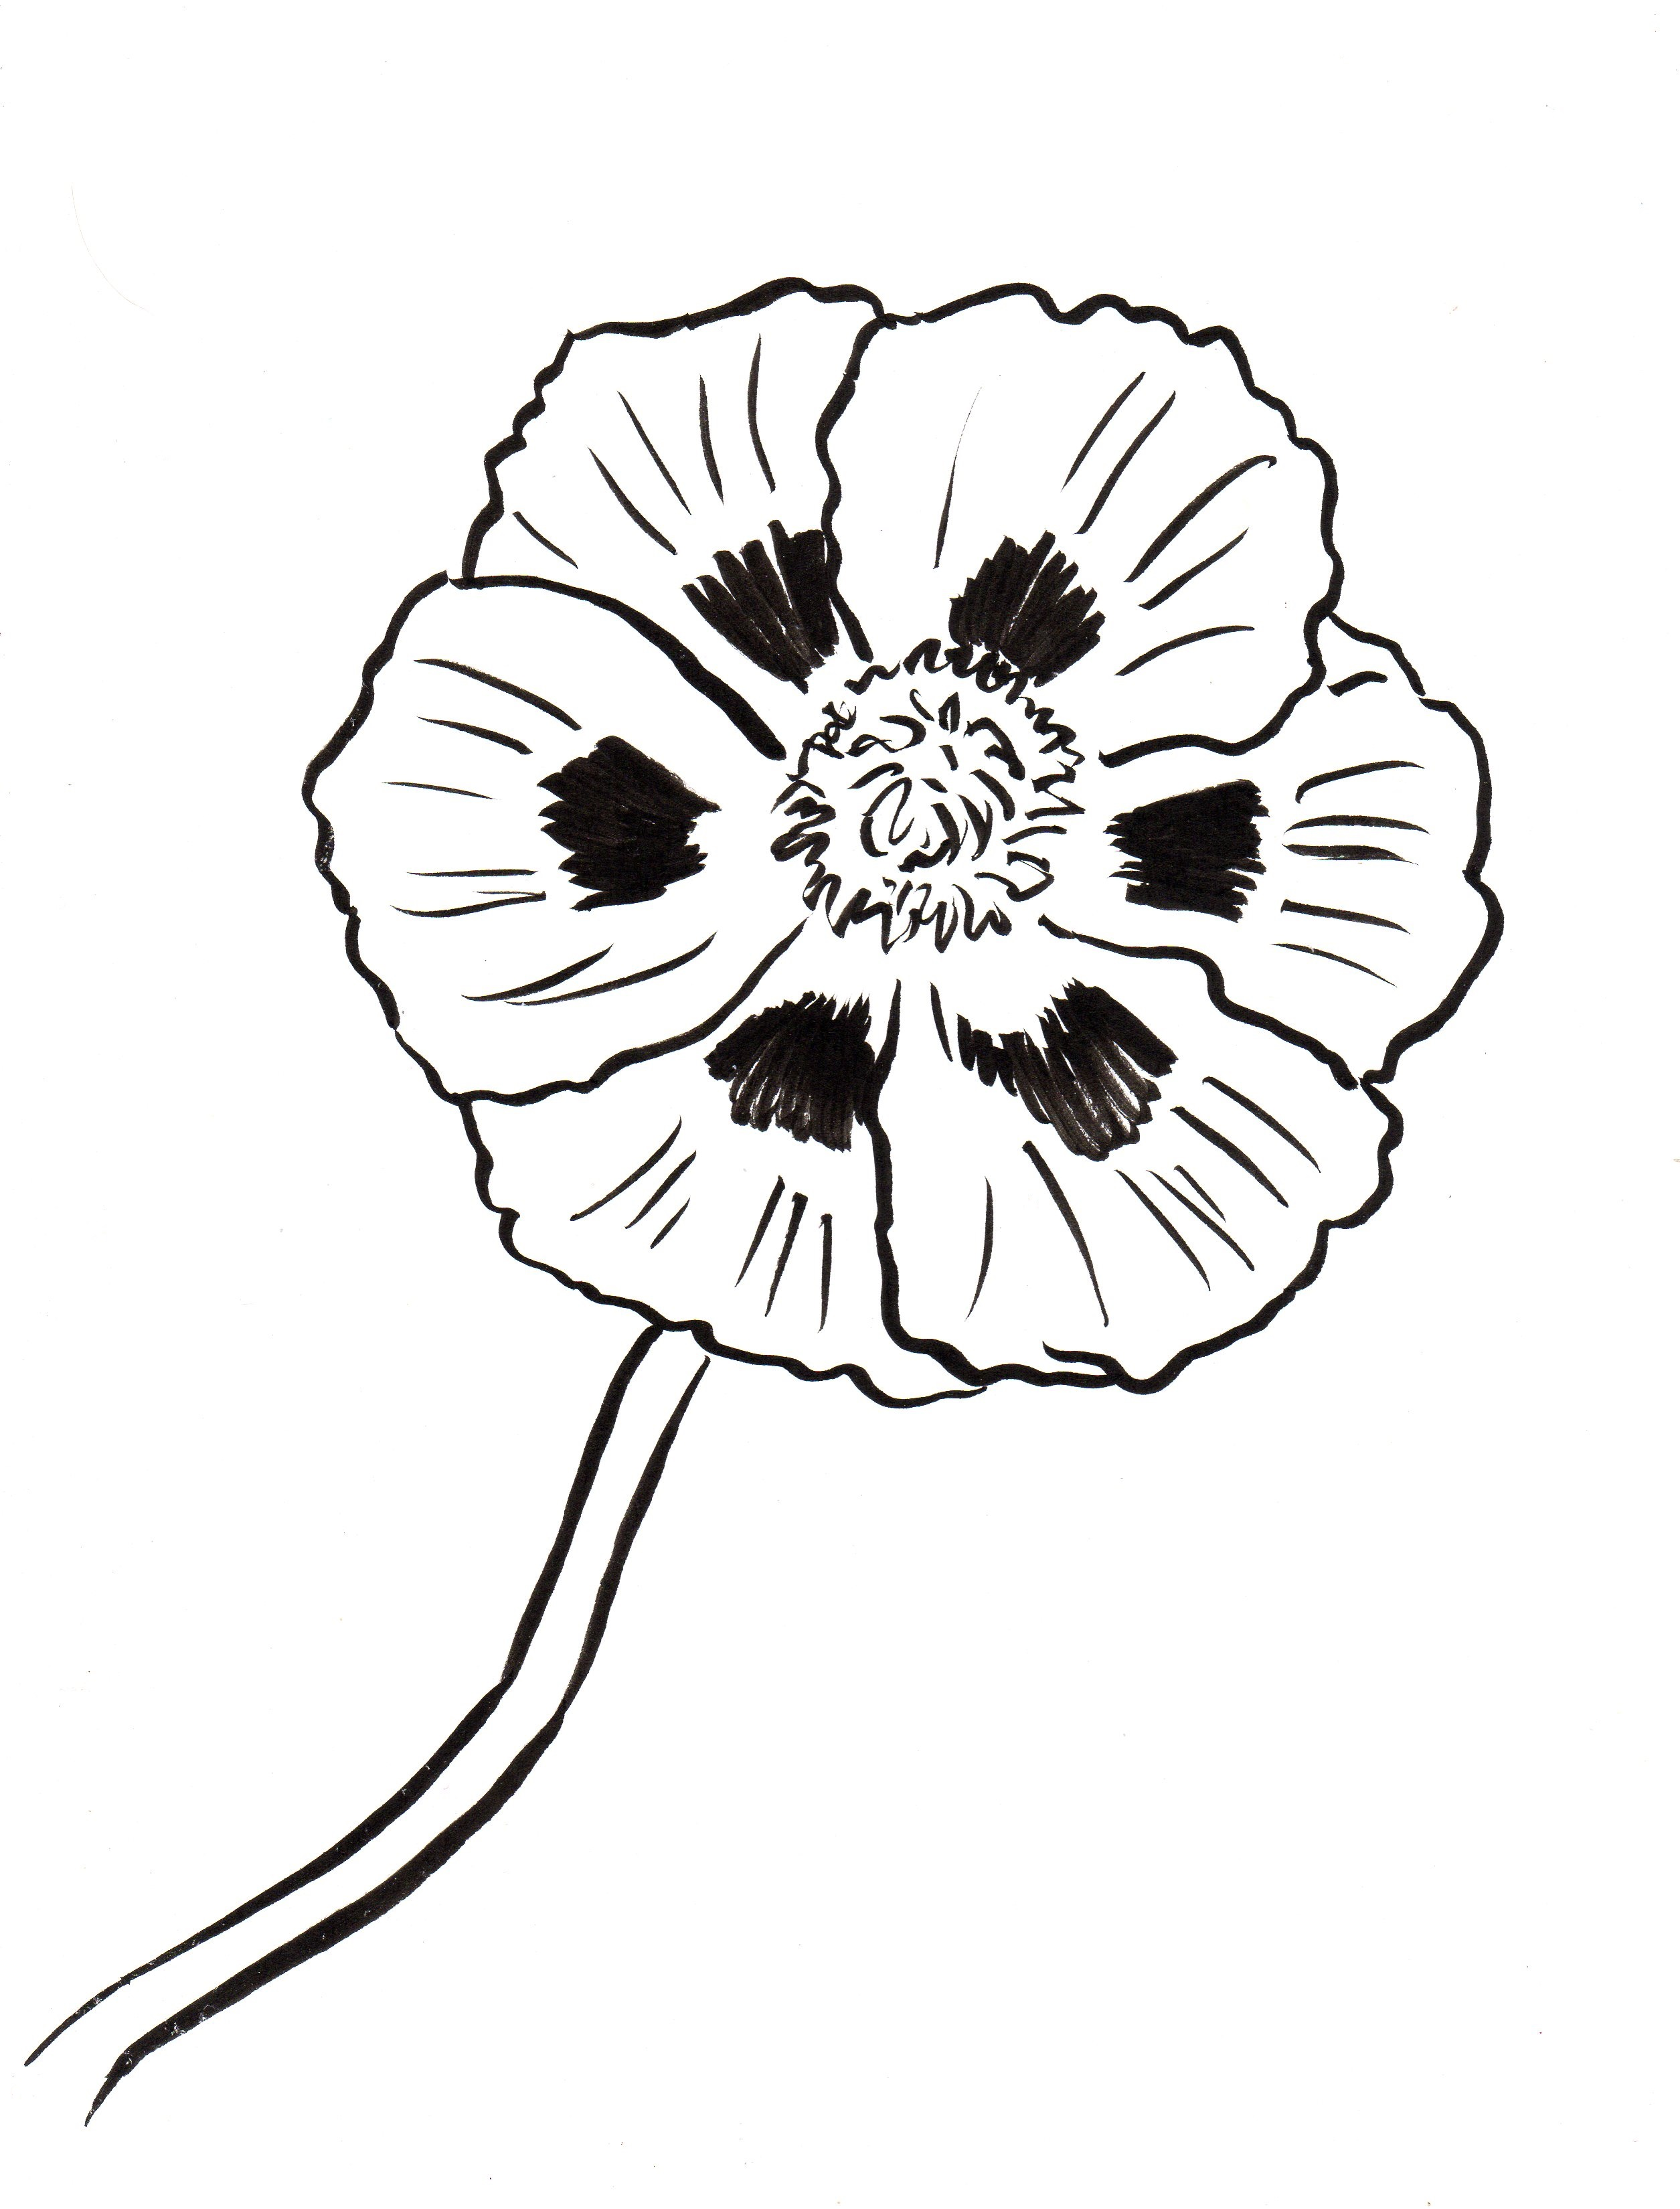 Poppy coloring page samantha bell for Poppy cat coloring pages